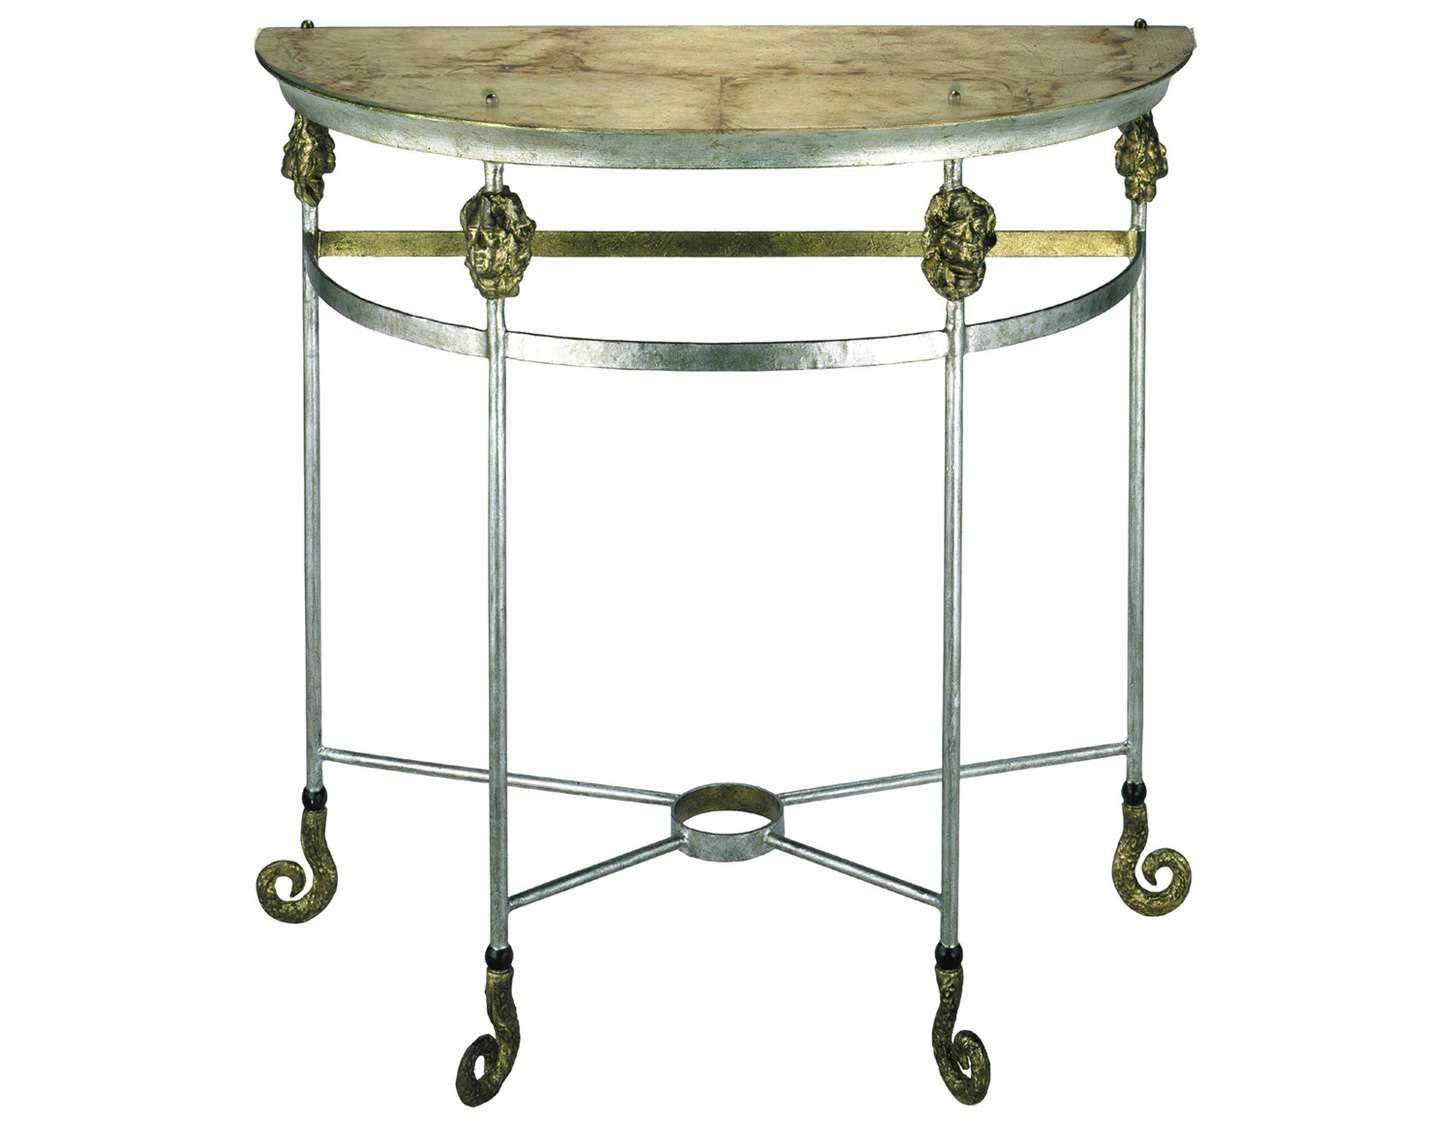 Flambeau armory 15 x 35 demi lune console table flcon1050 for 35 console table